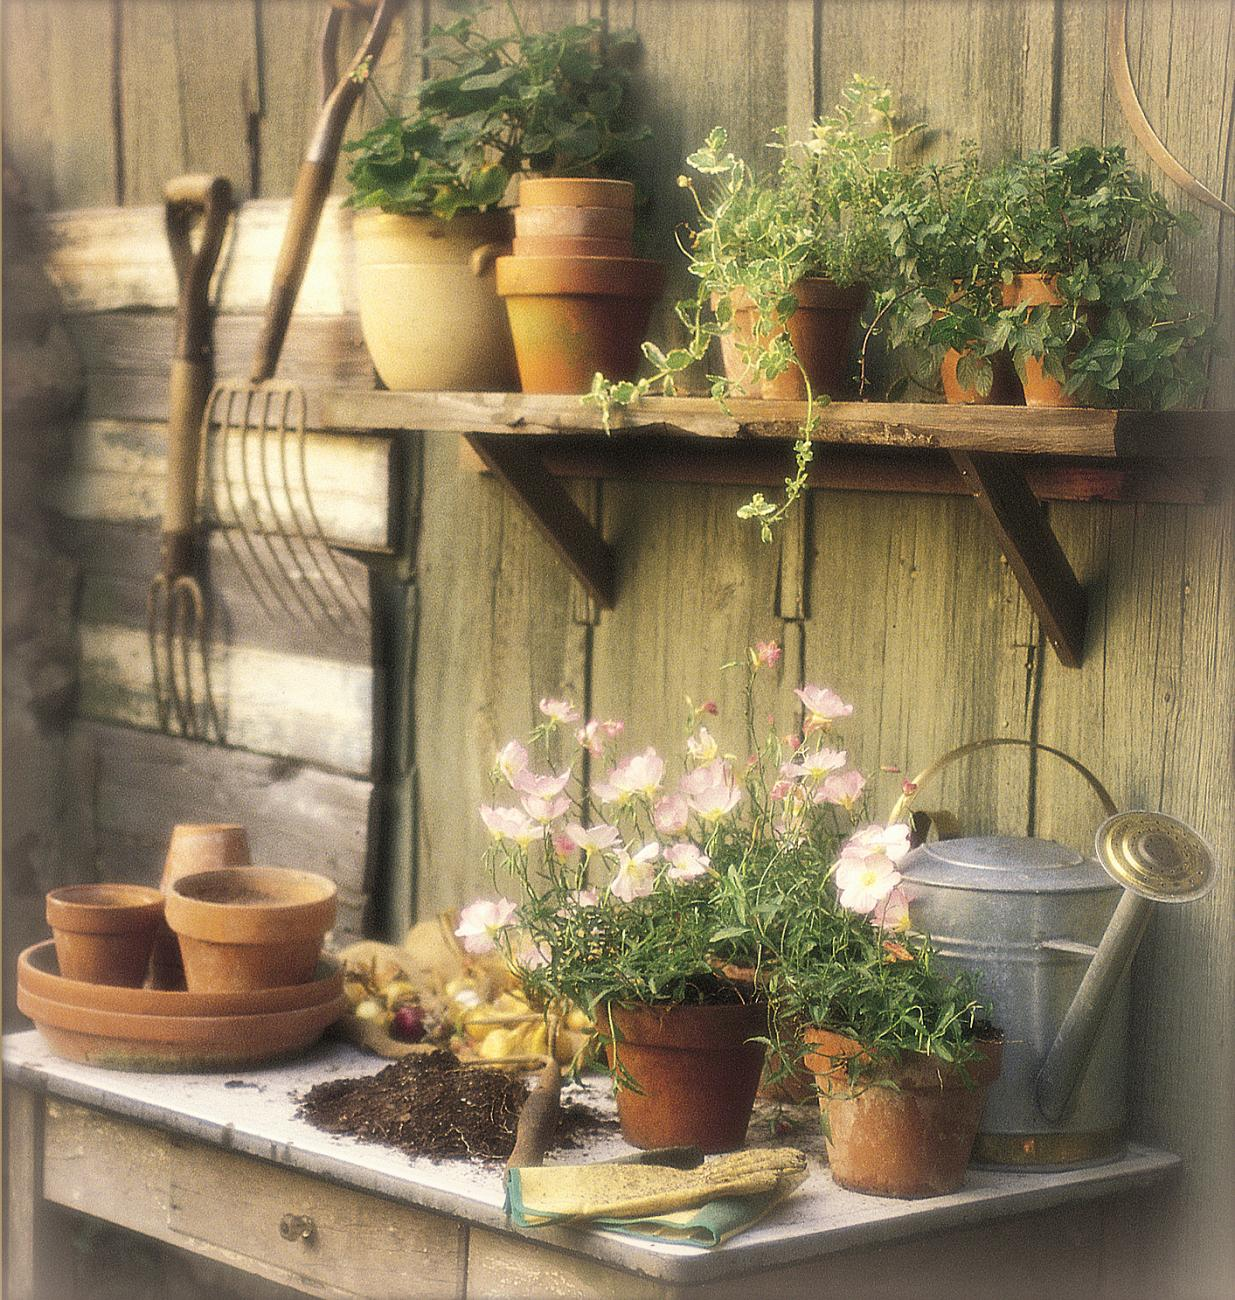 Raised Bed Garden Planting-Thinkstock